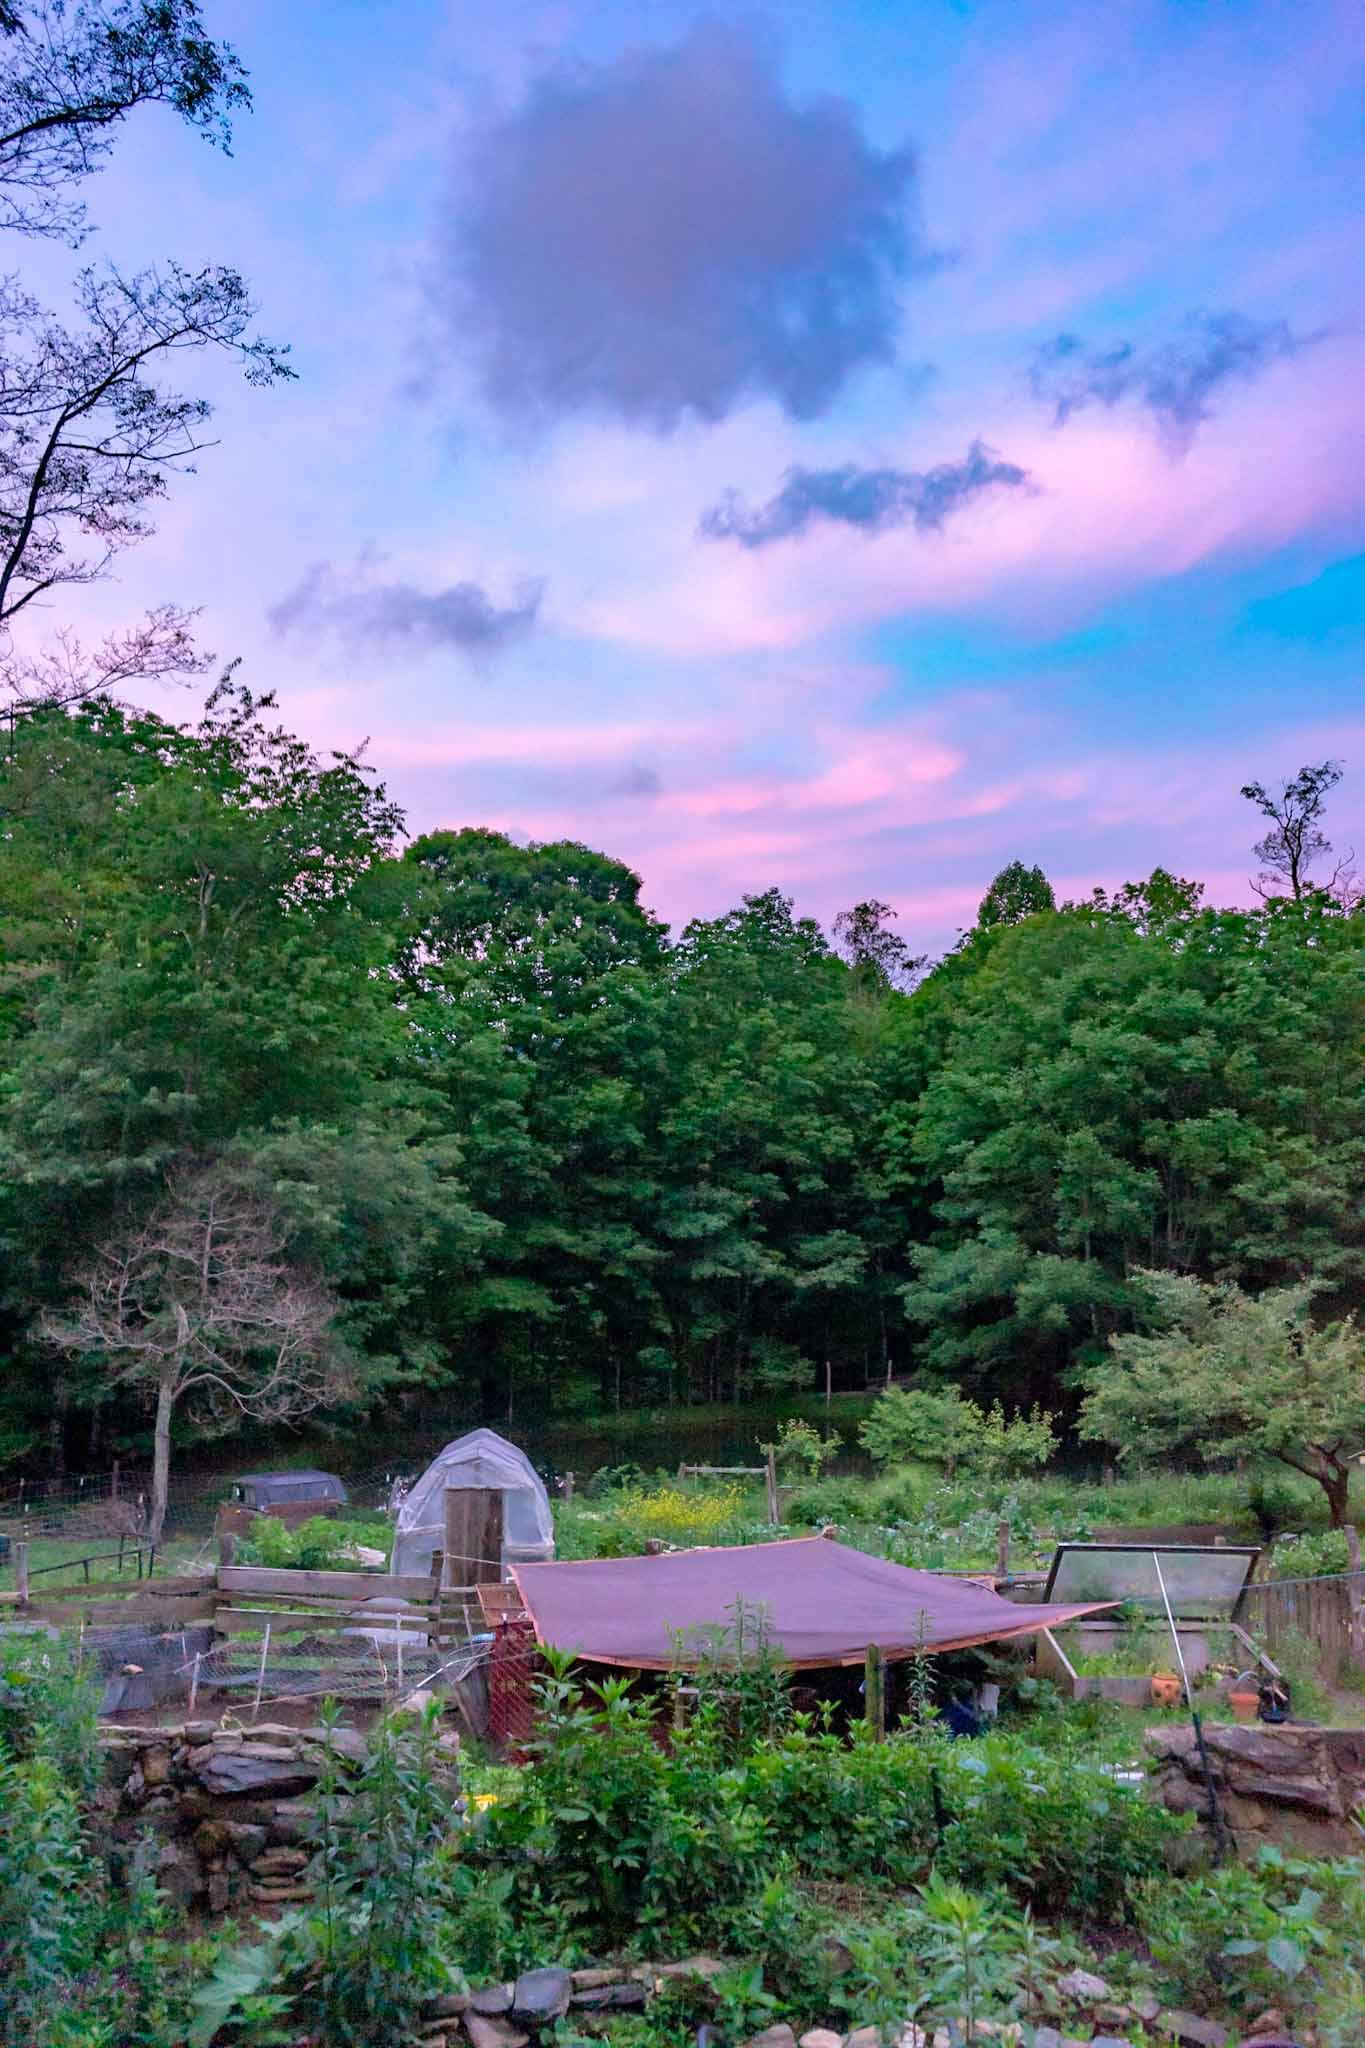 pink-blue clouds above the farm's beds and greenhouse